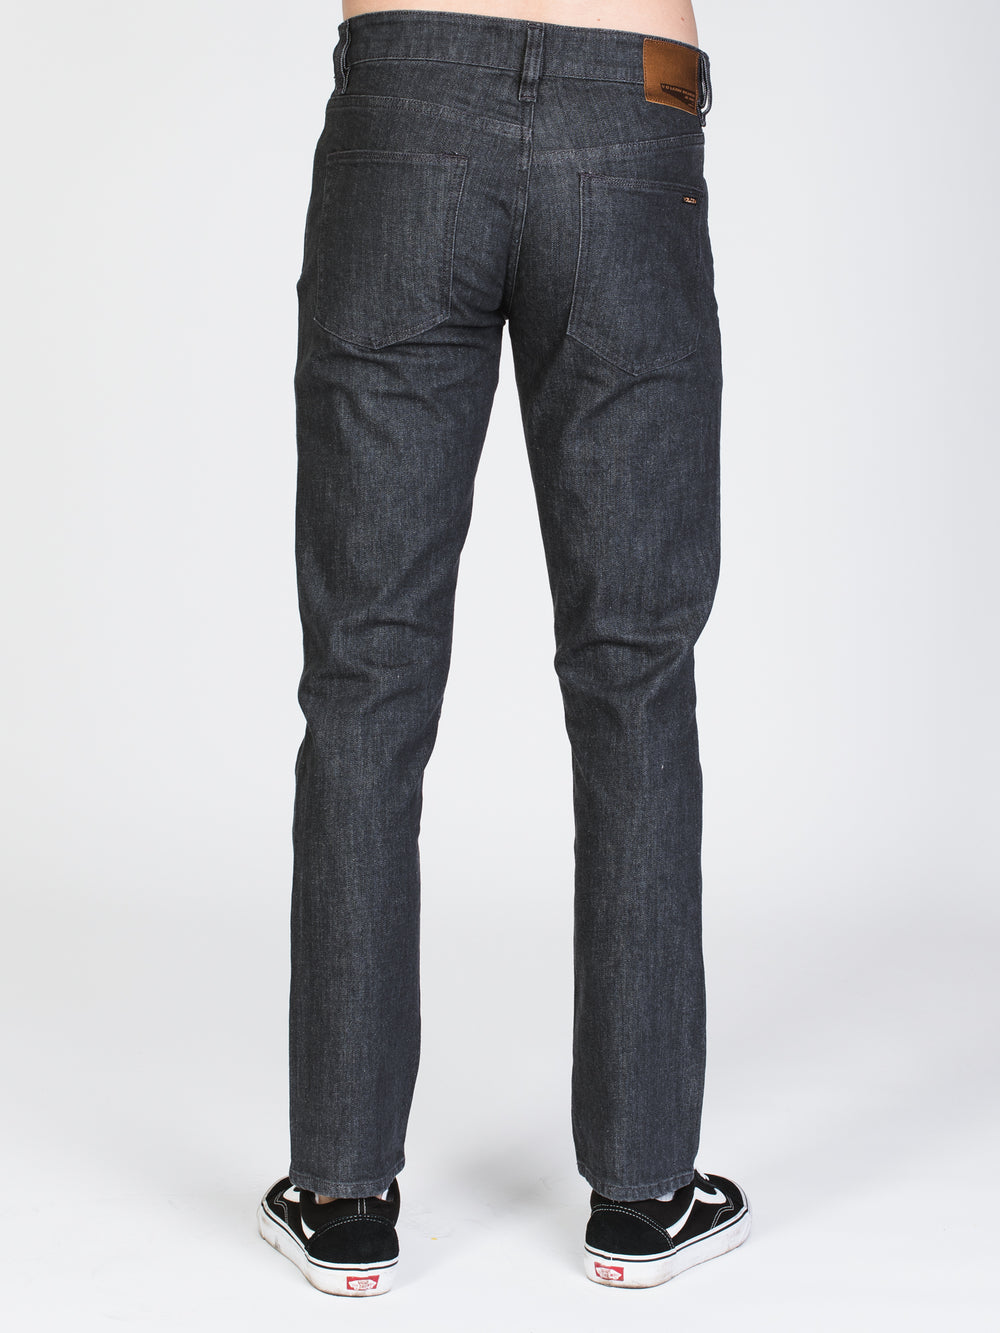 MENS VORTA JEAN 15' - DARK GREY